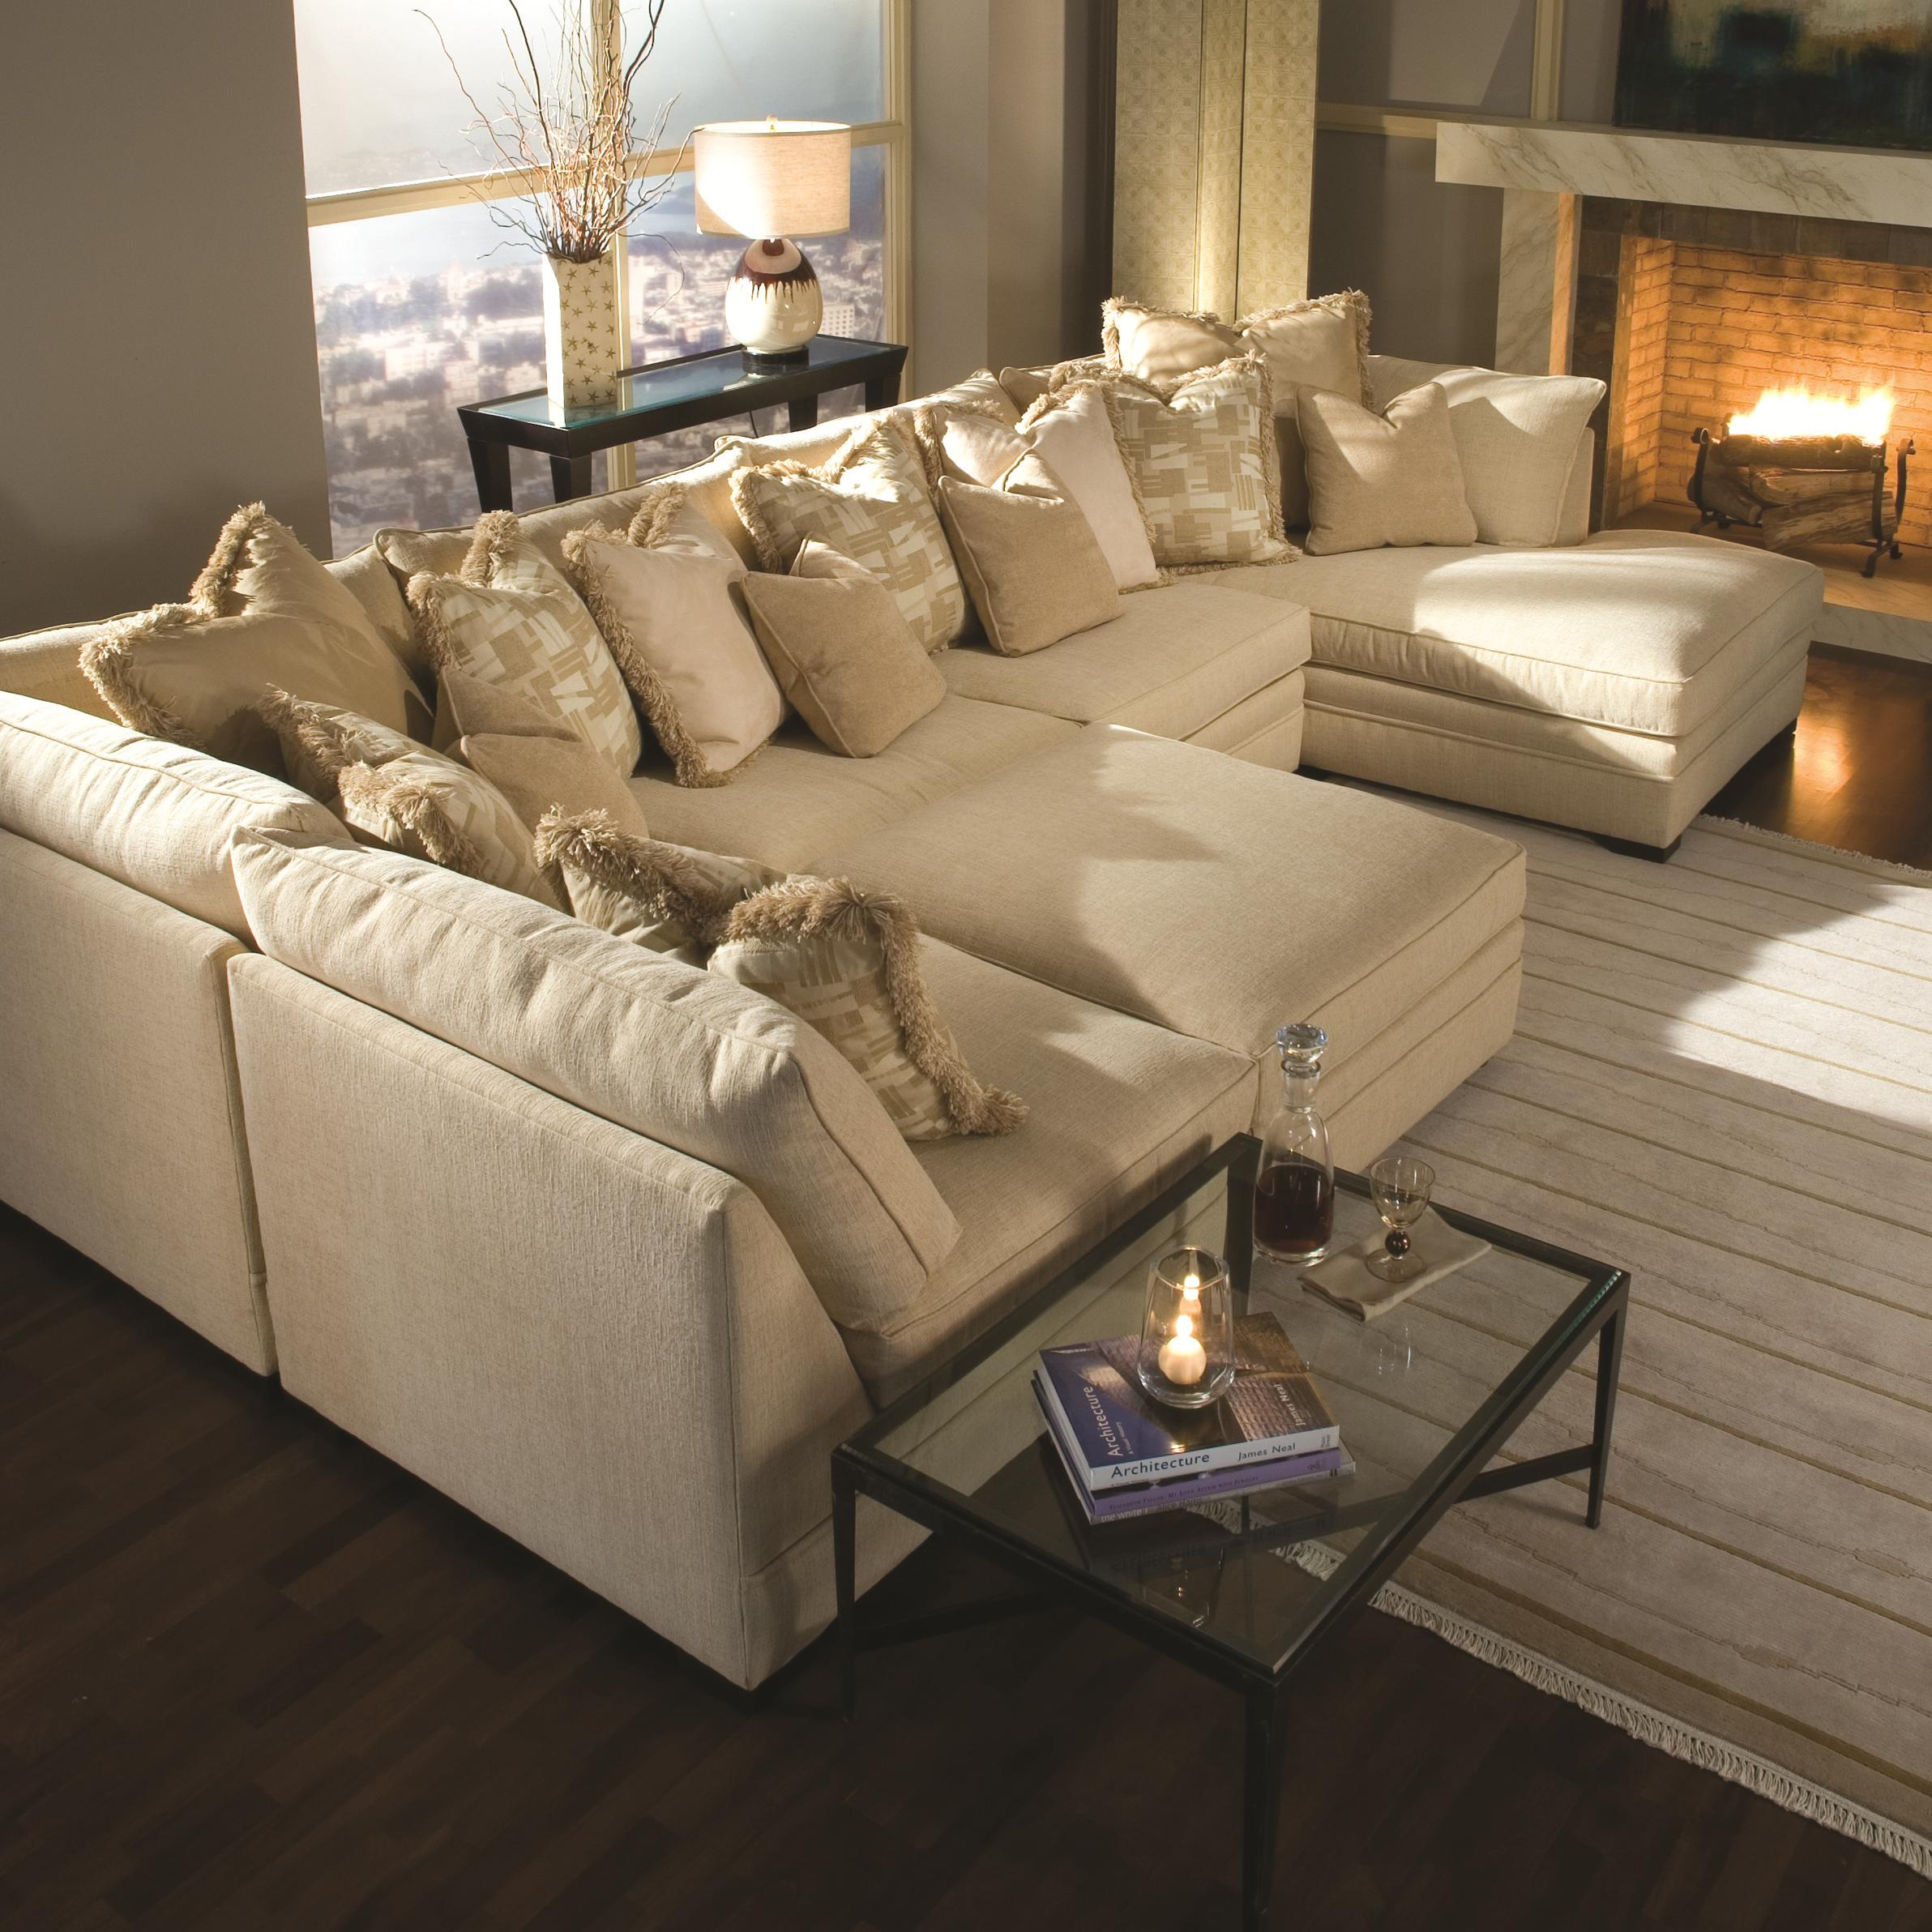 Big Sofa In A Small Room U Shaped Sectional With Chaise Design Homesfeed